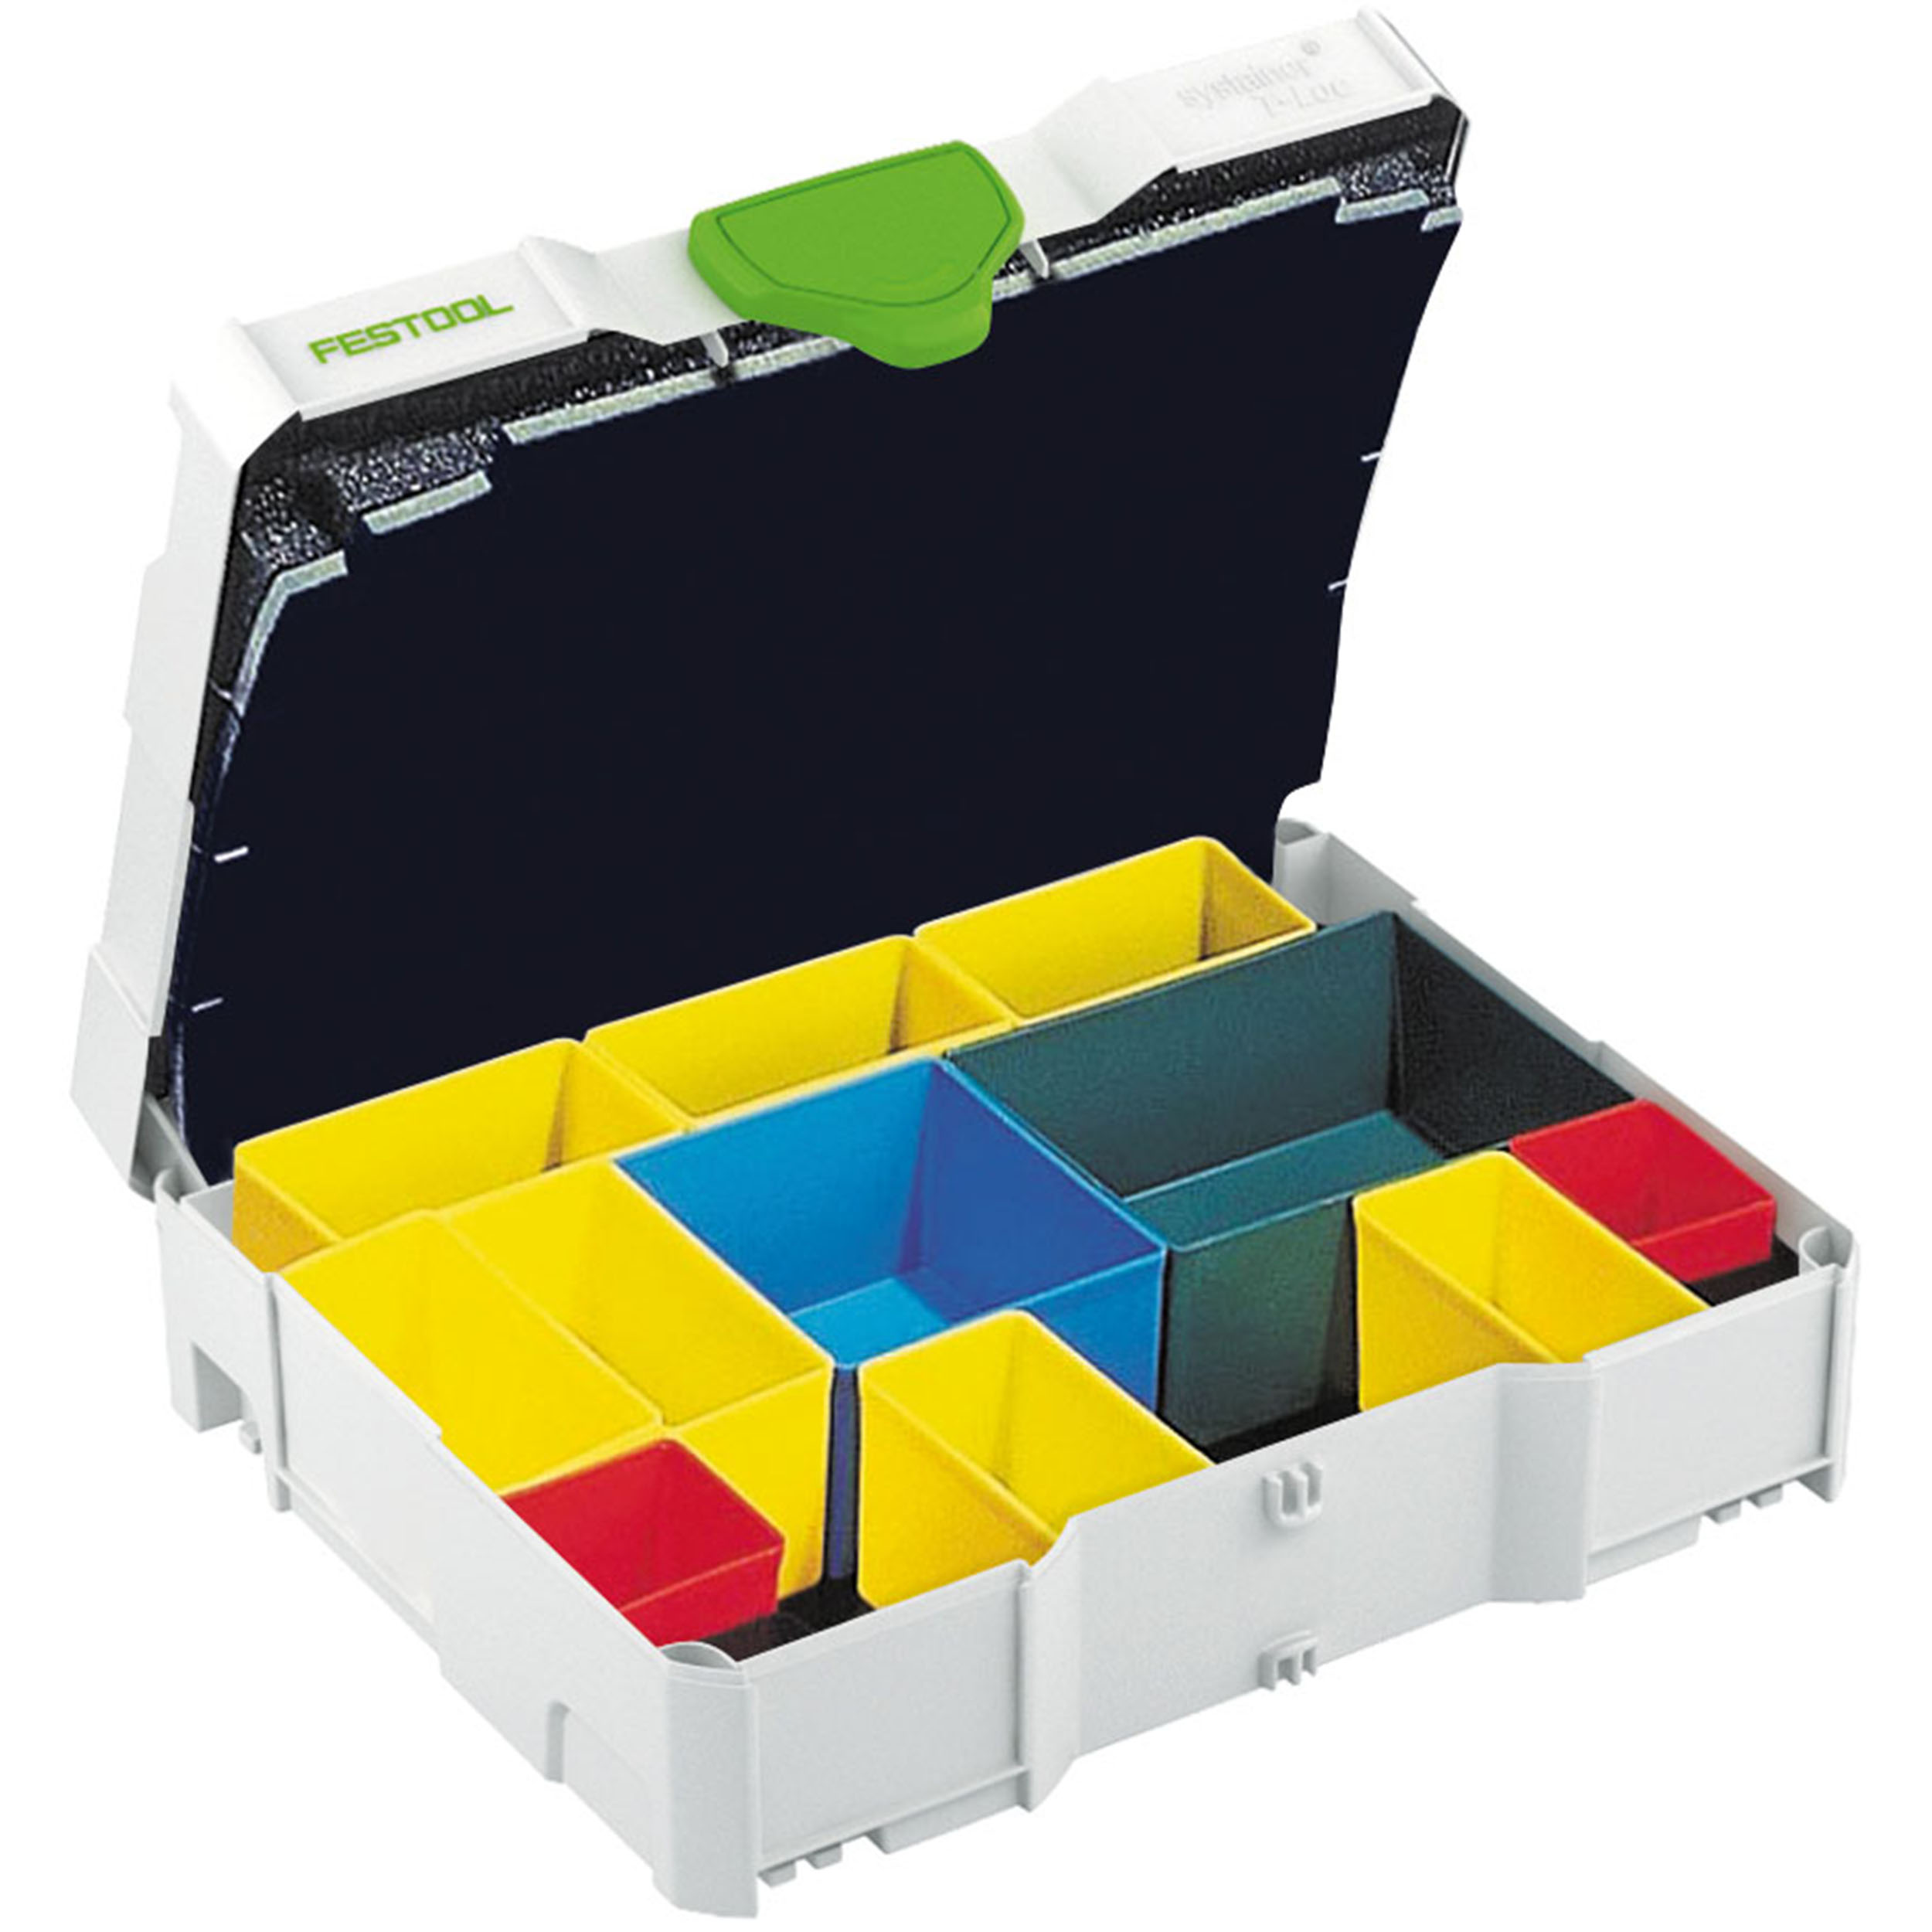 T-LOC Systainer 1 Box with Compartments